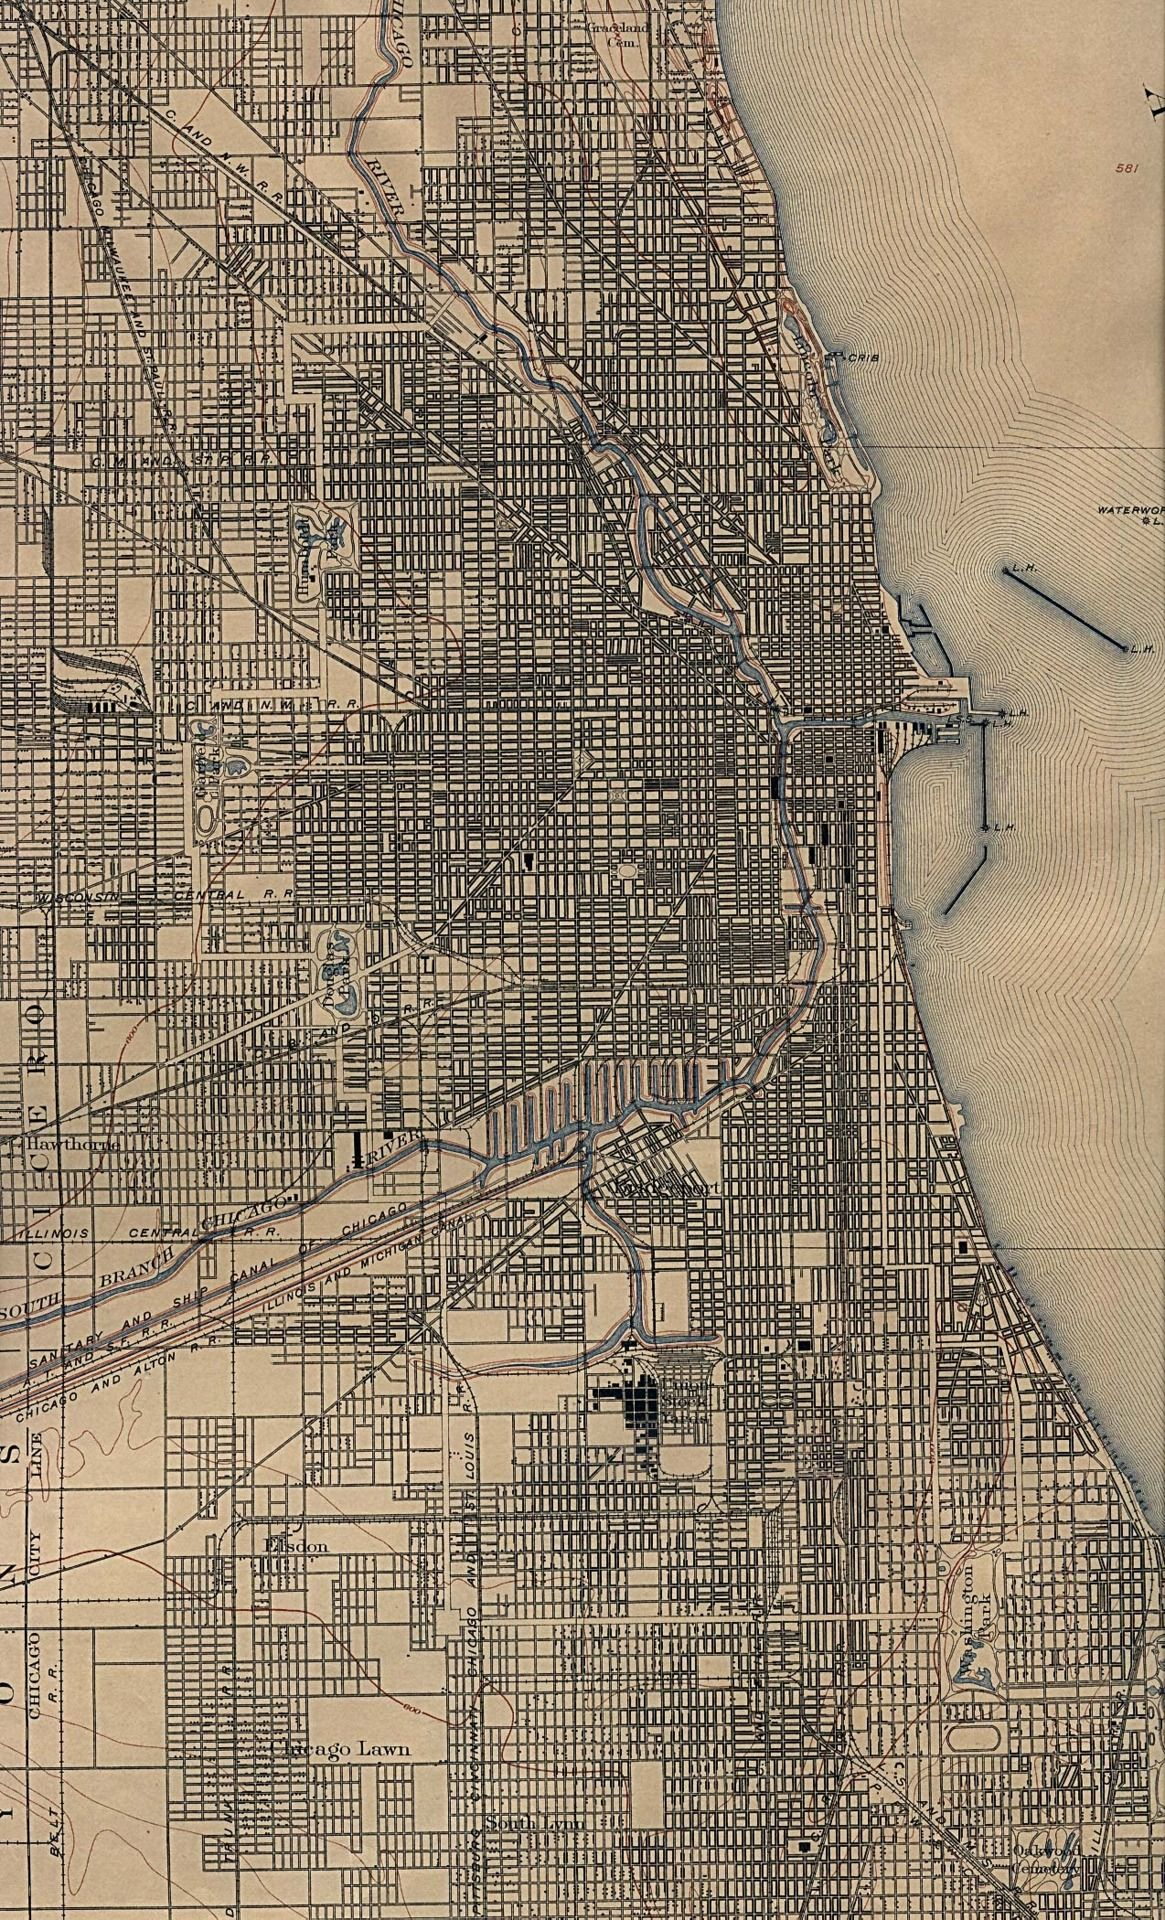 1890 map of Midtown Manhattan from 34th